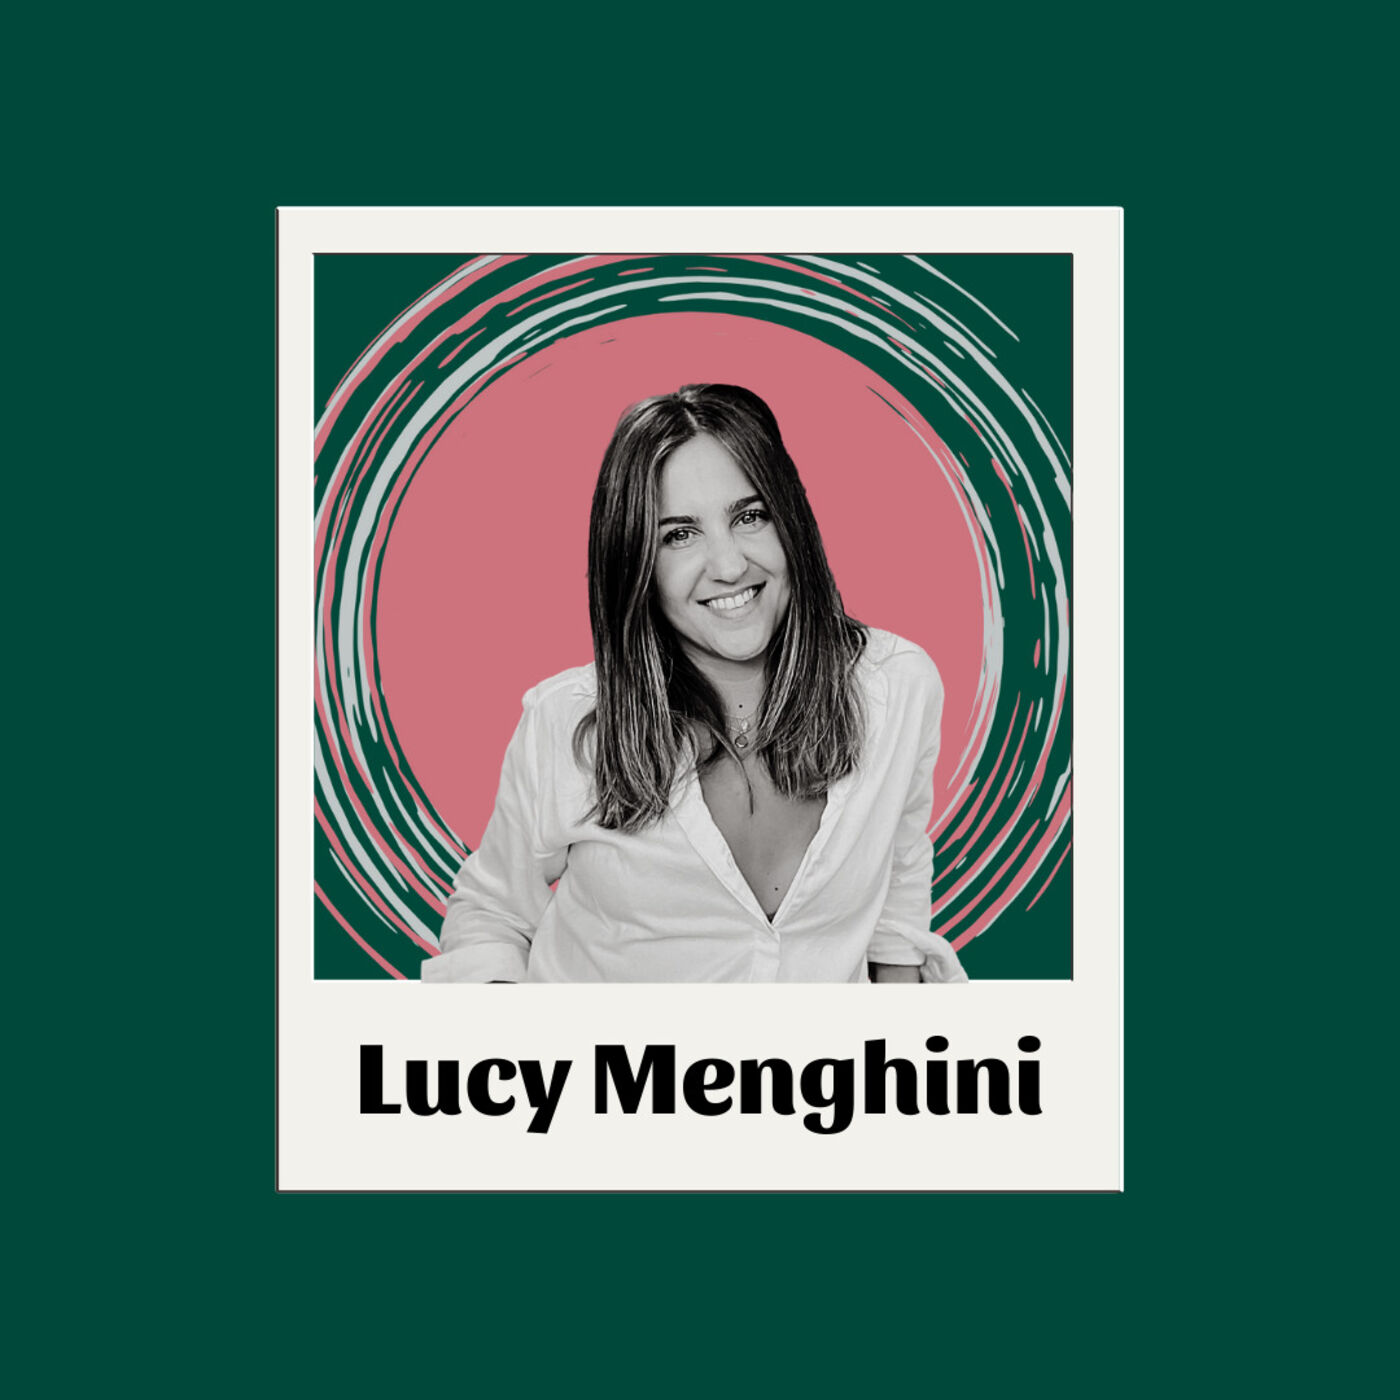 EP16 Lucy Menghini: Building your career, relationships and books